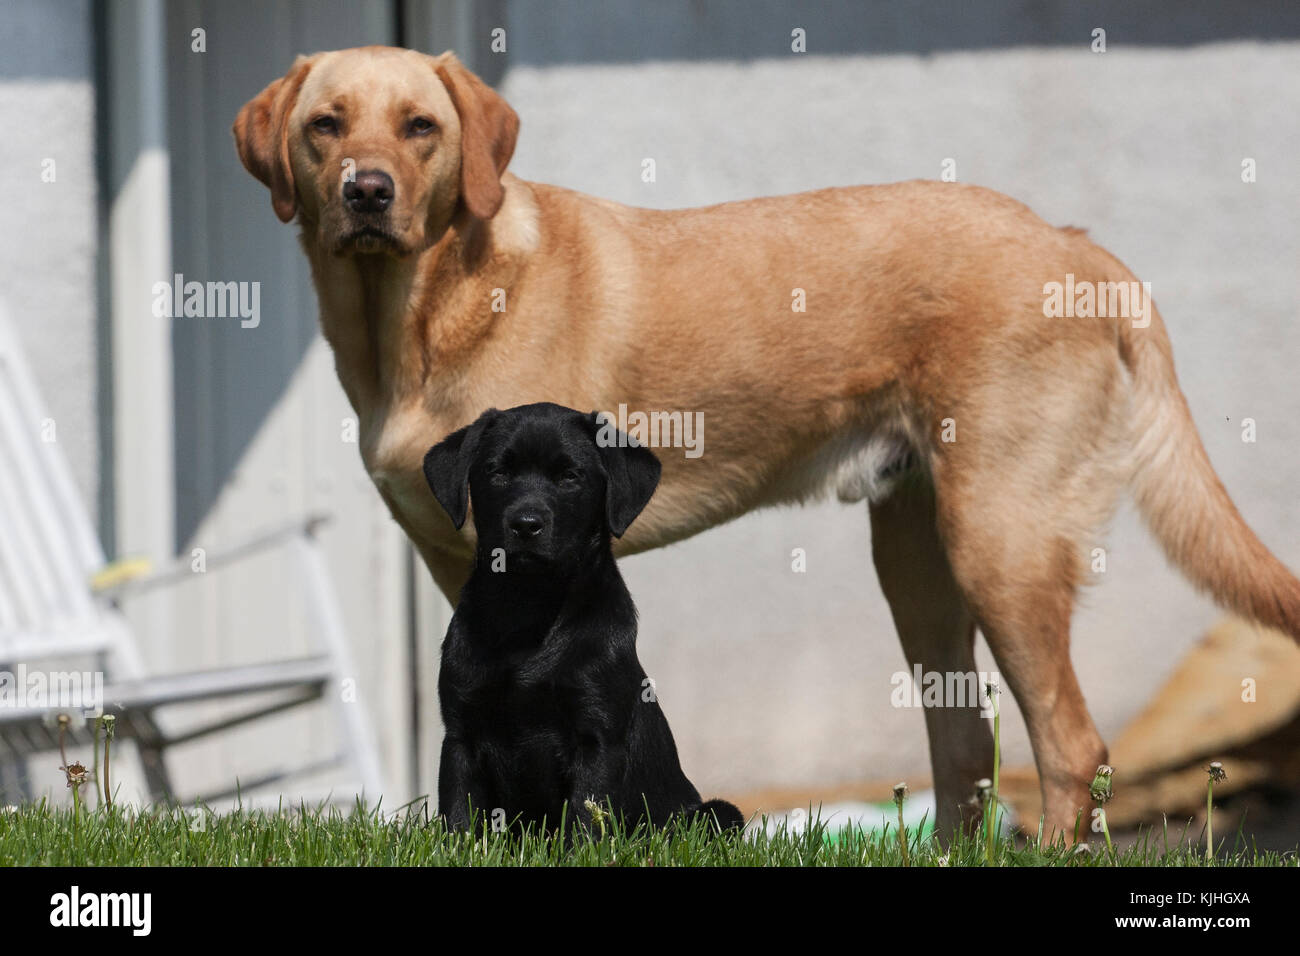 Adult Yellow Labrador And Puppy Black Labrador Togehter Gammelstrup Denmark Stock Photo Alamy